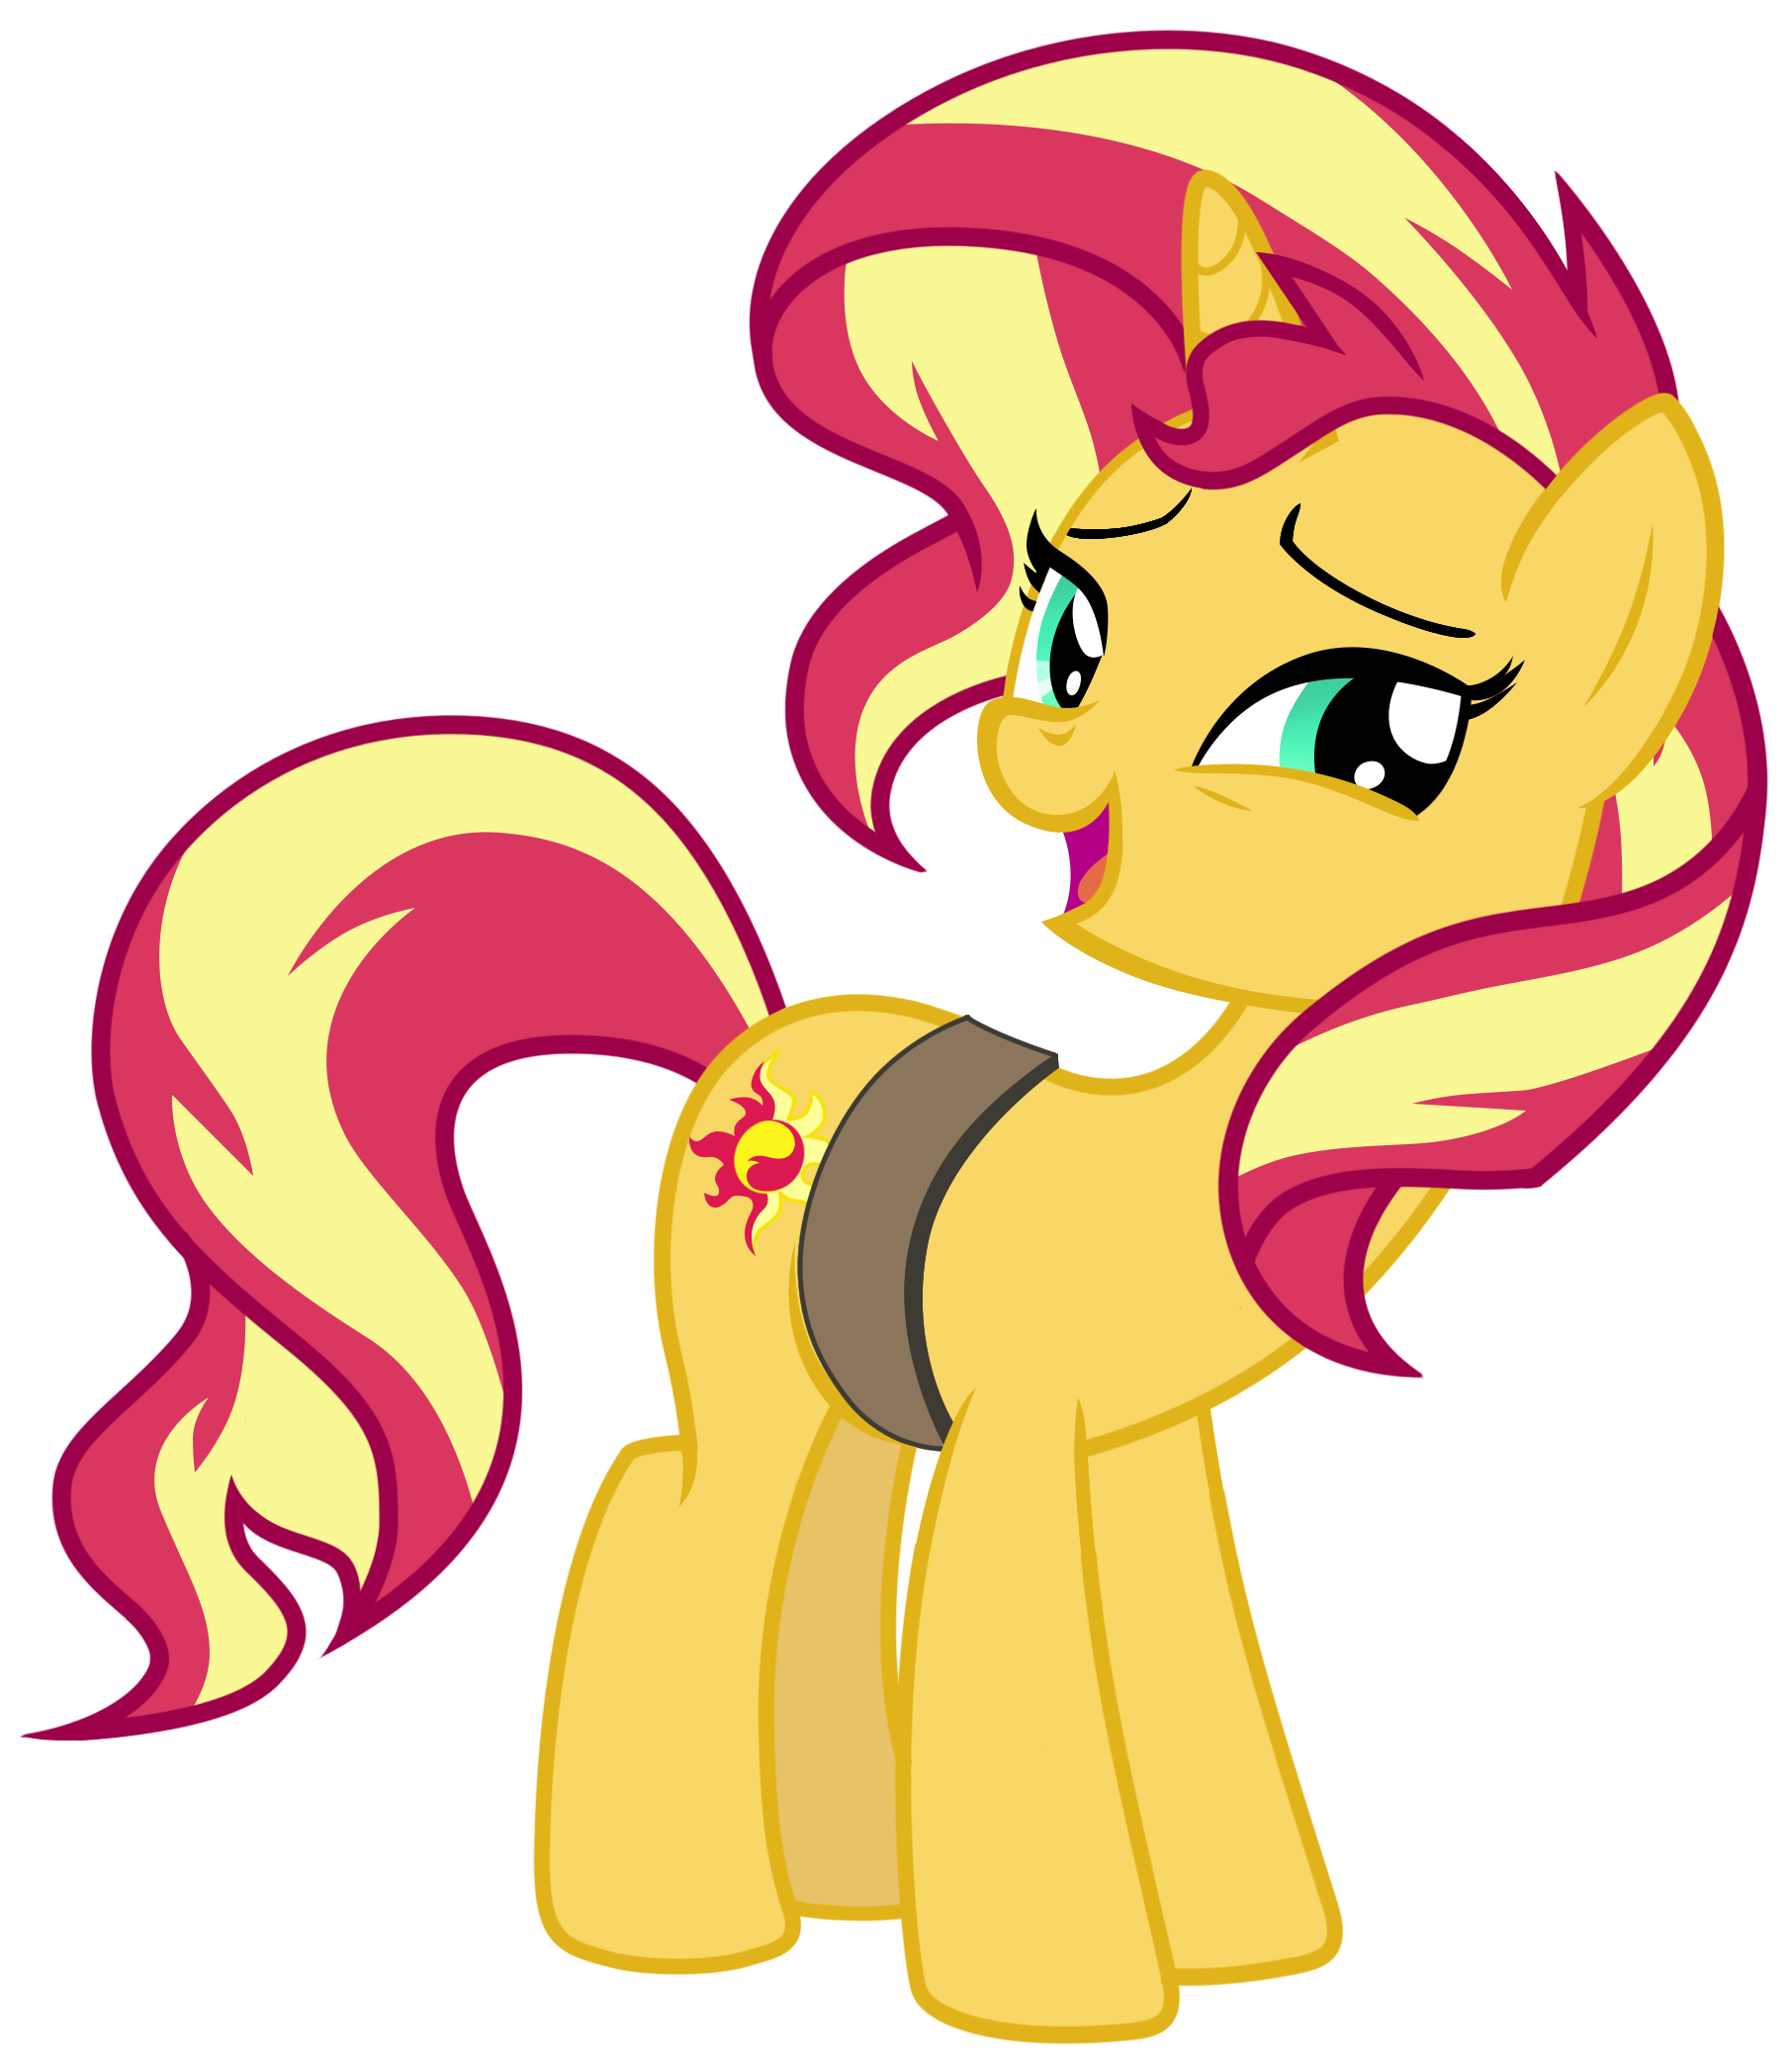 Shy clipart cheerful girl. Sunset shimmer by famousmari